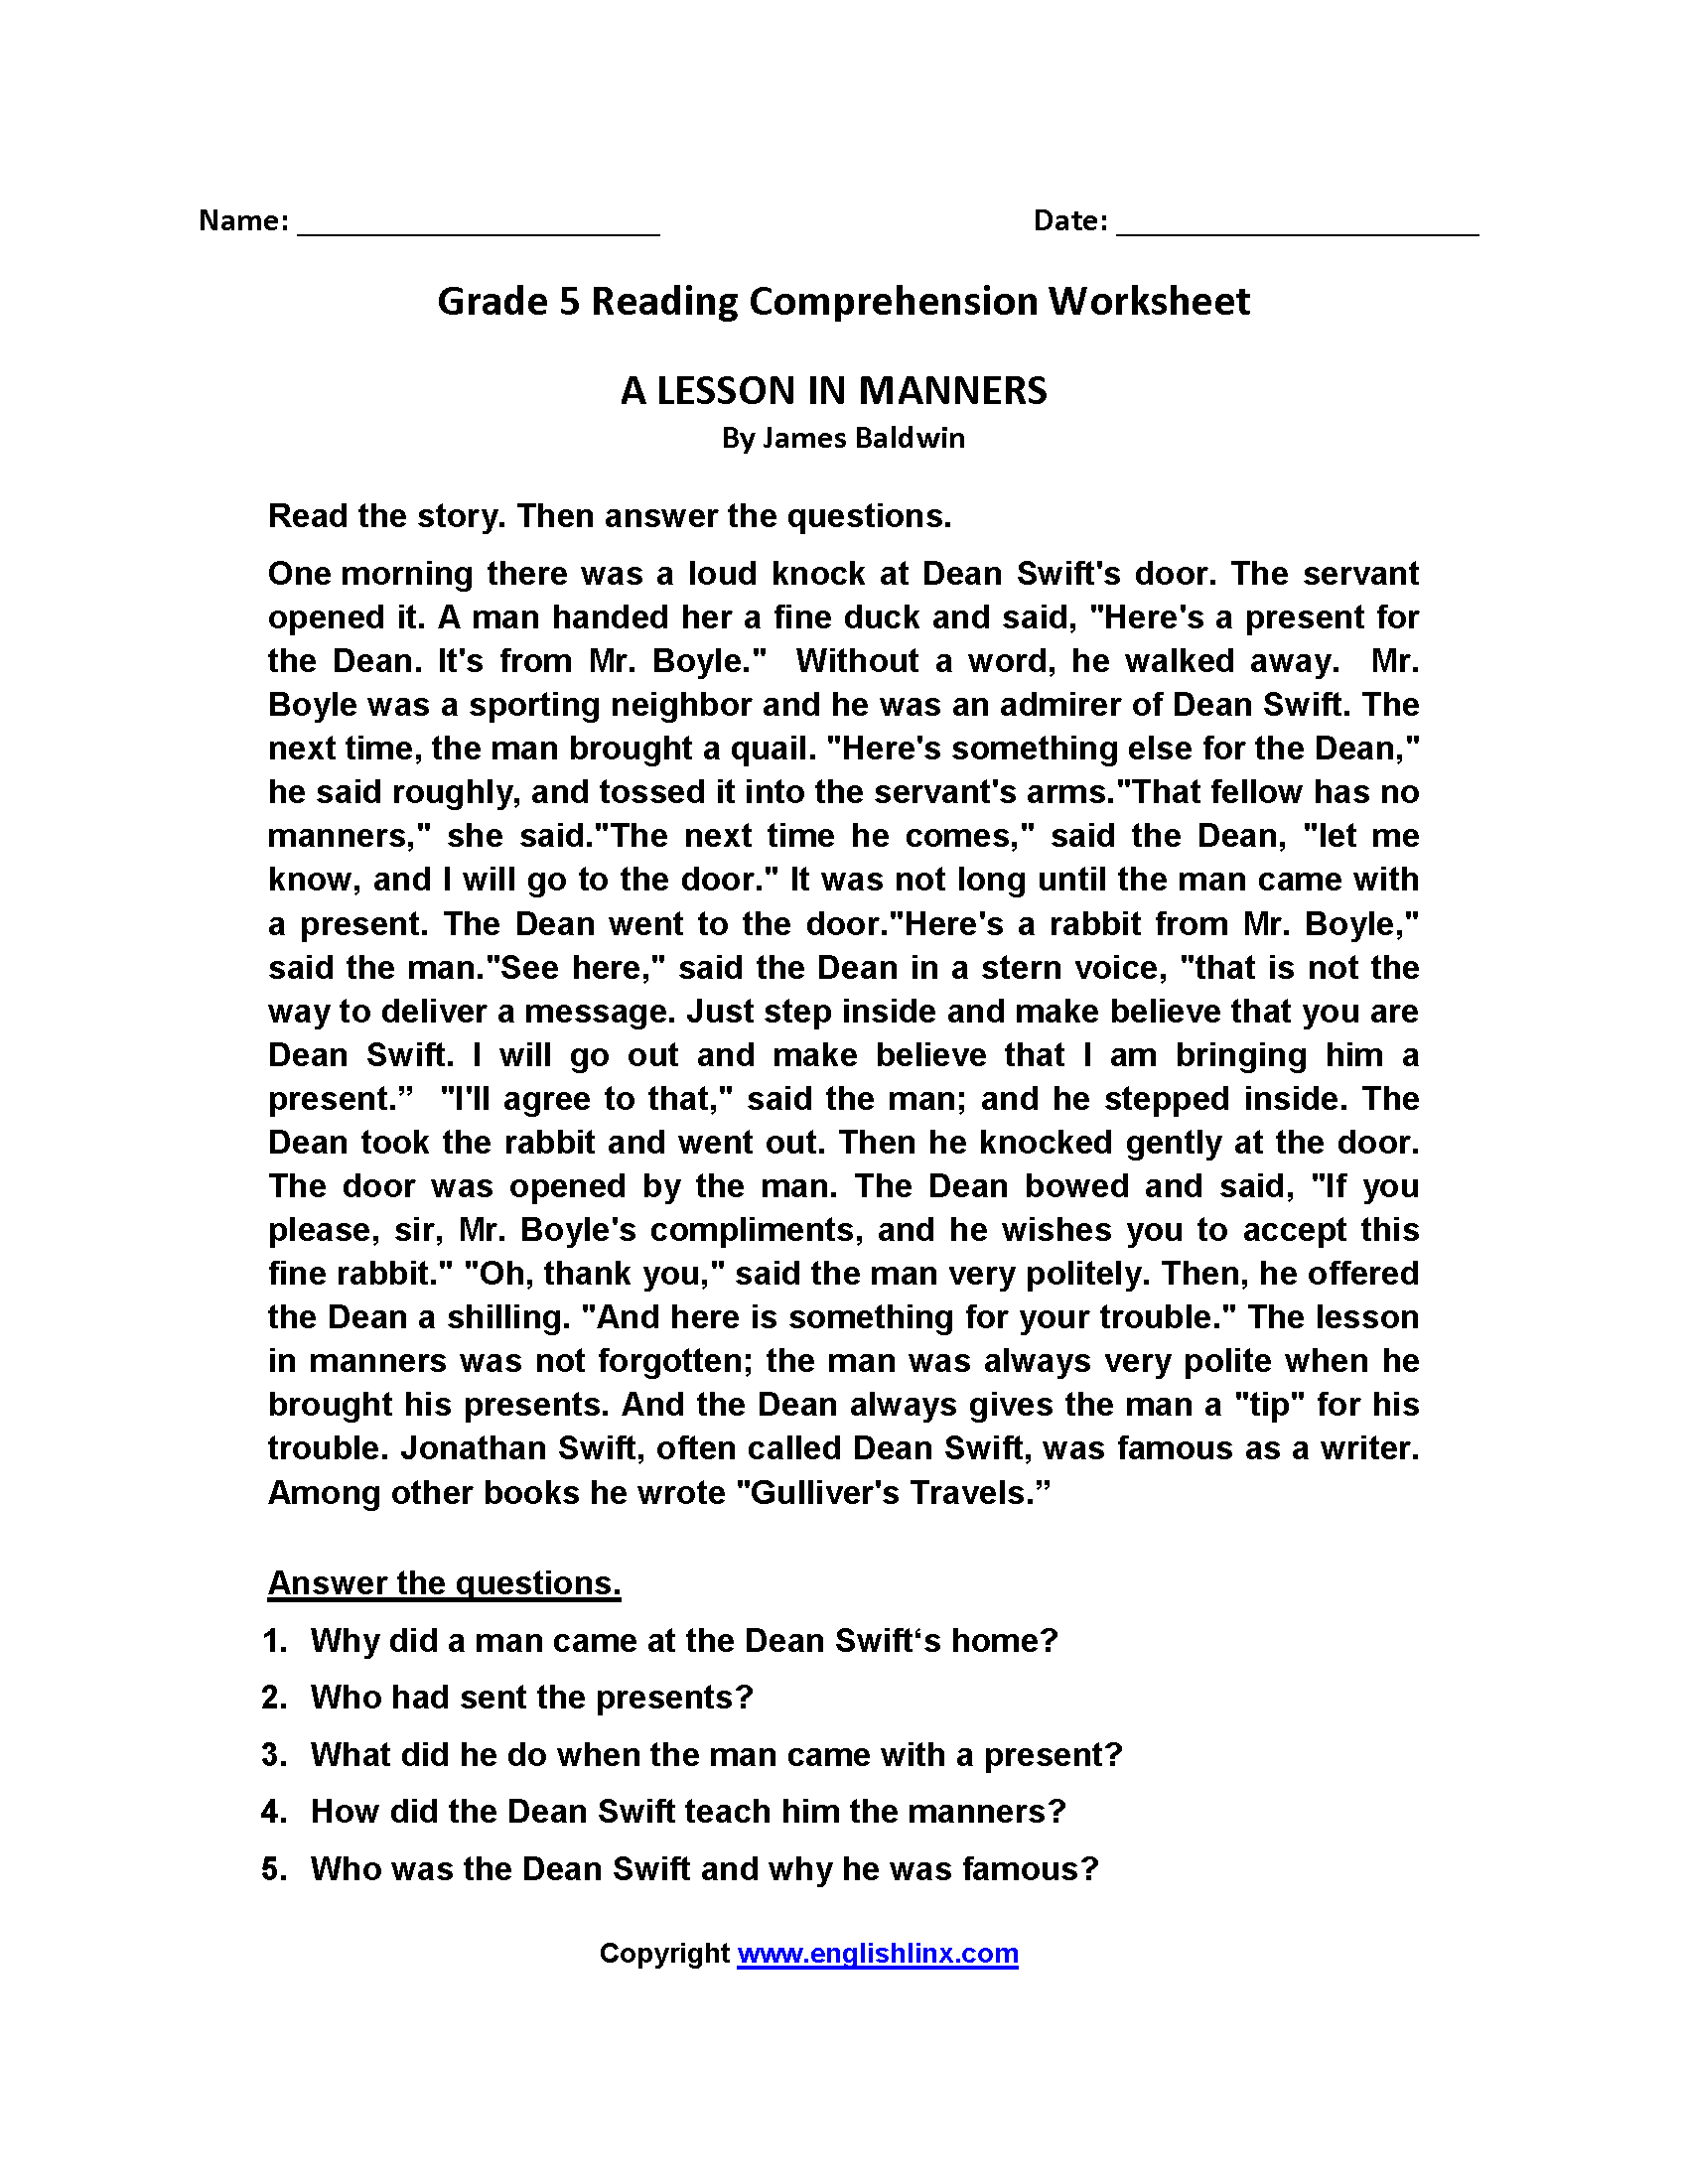 Lesson In Manners Fifth Grade Reading Worksheets Reading Comprehension Worksheets Teaching Reading Comprehension Comprehension Worksheets [ 2200 x 1700 Pixel ]